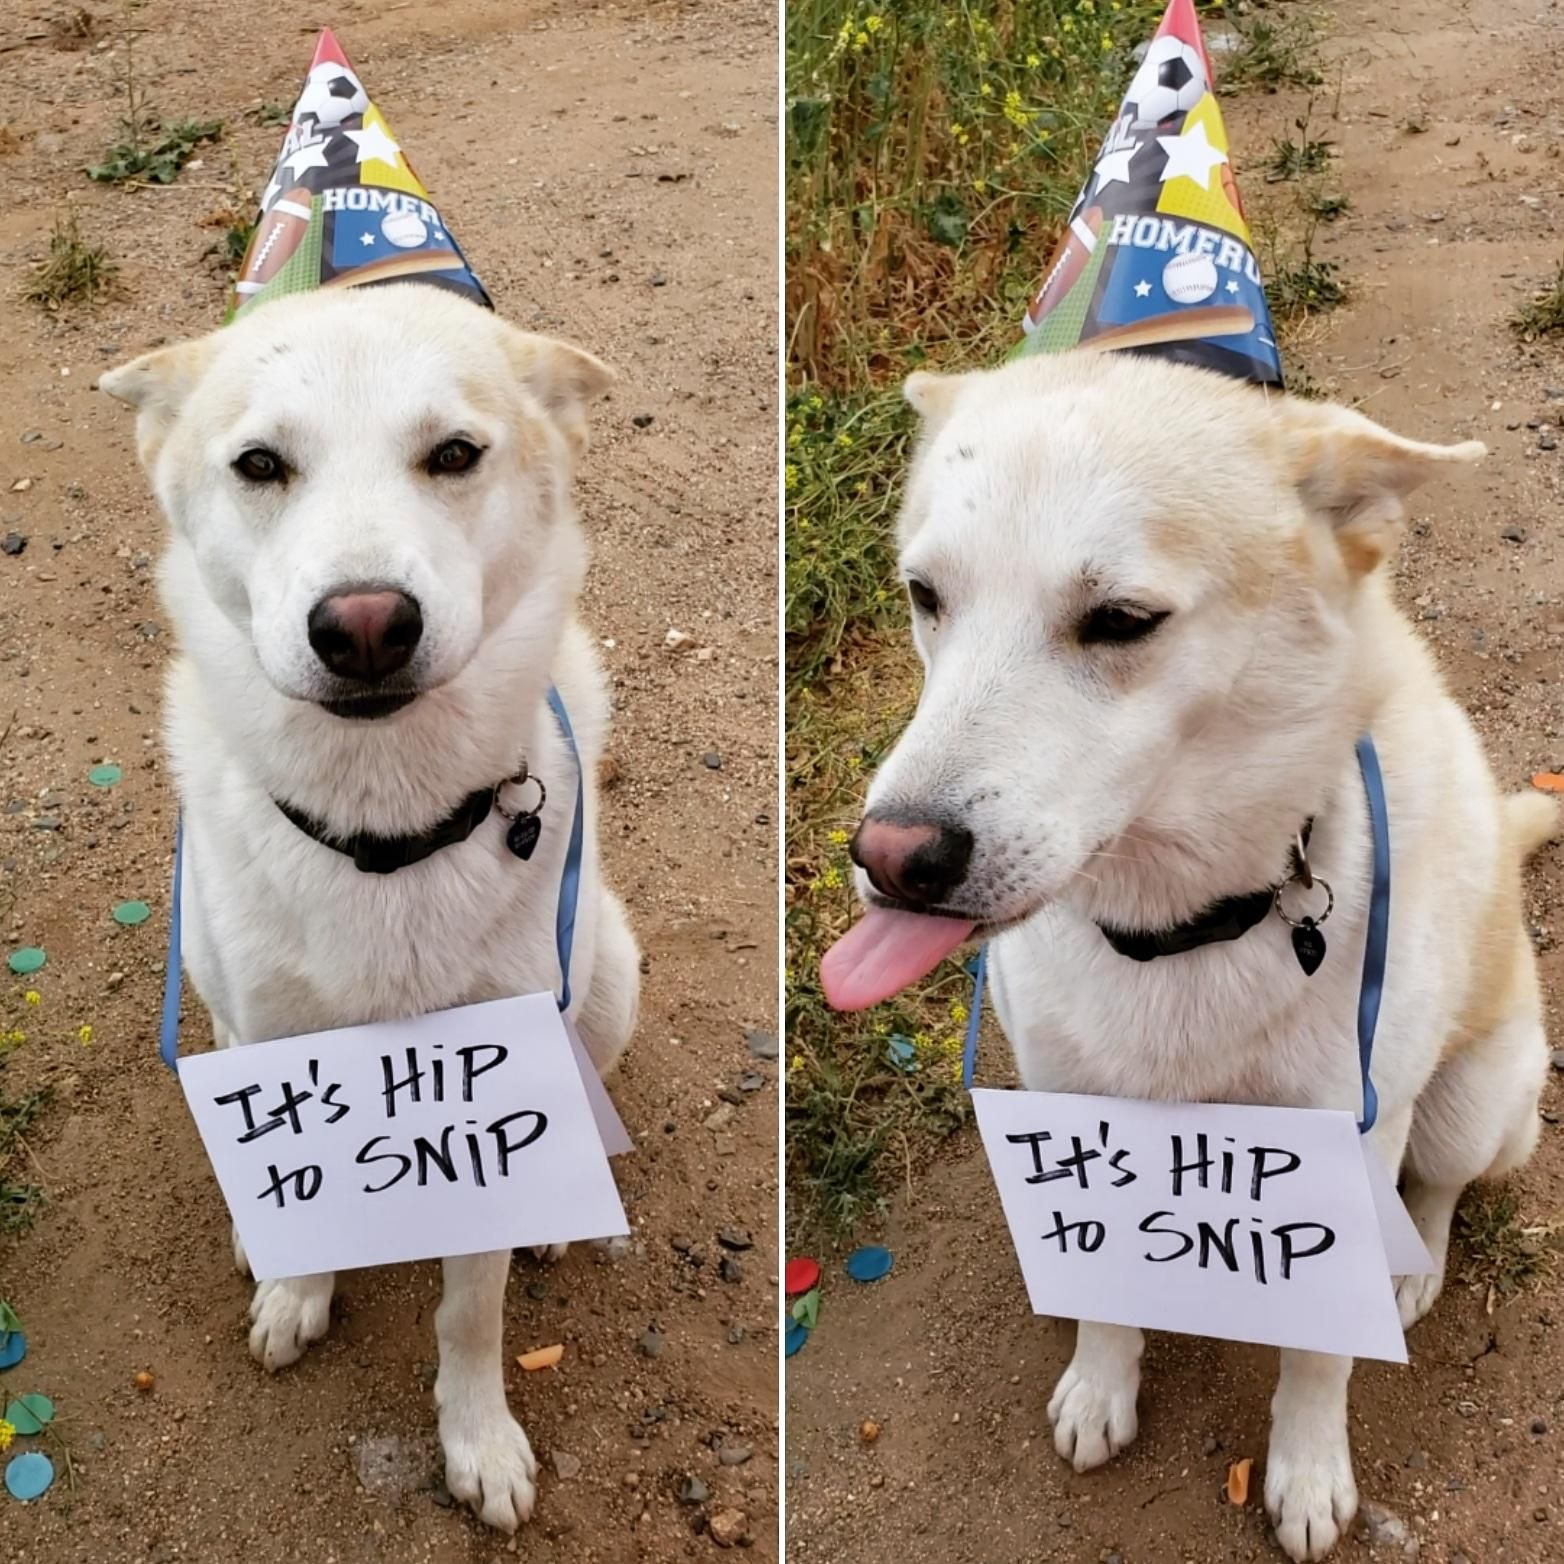 Max Is Getting Neutered Tomorrow So My Friend Threw His Balls A Going Away Party Https Ift Tt 2wmiyiy Neuter Dog Party Corgi Funny